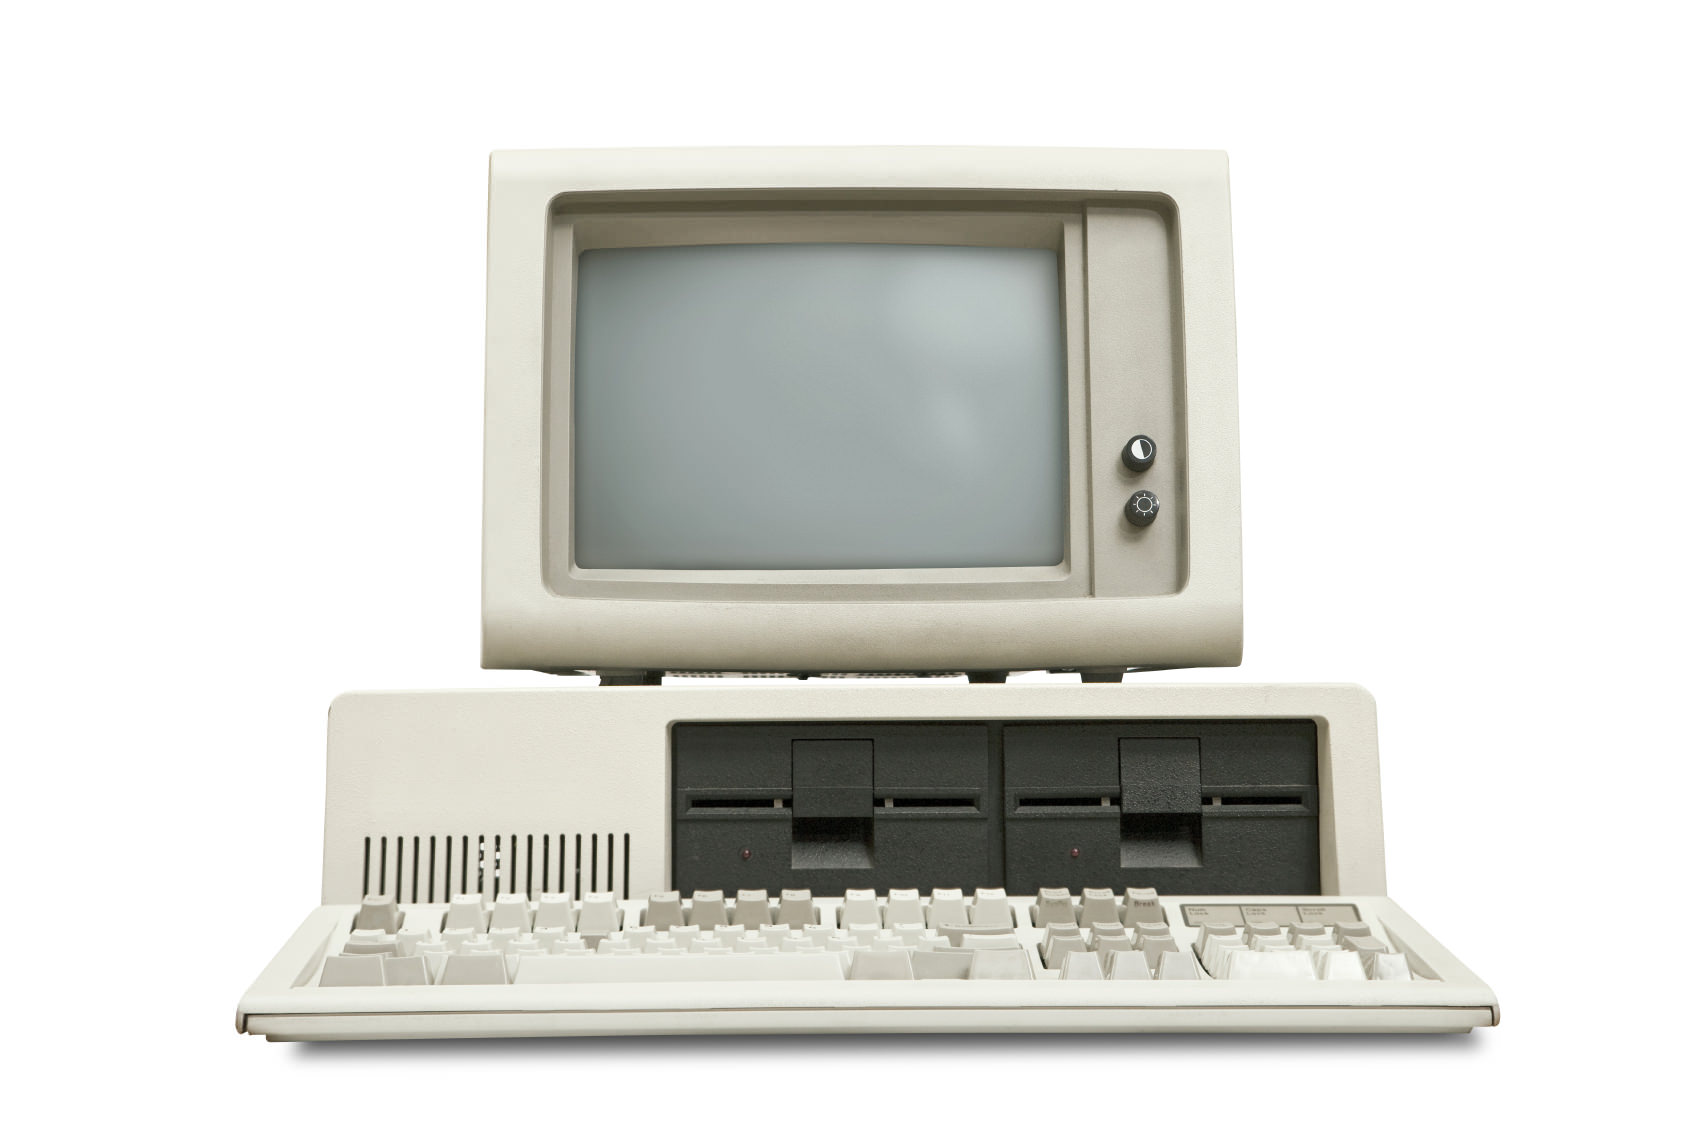 old personal computer image